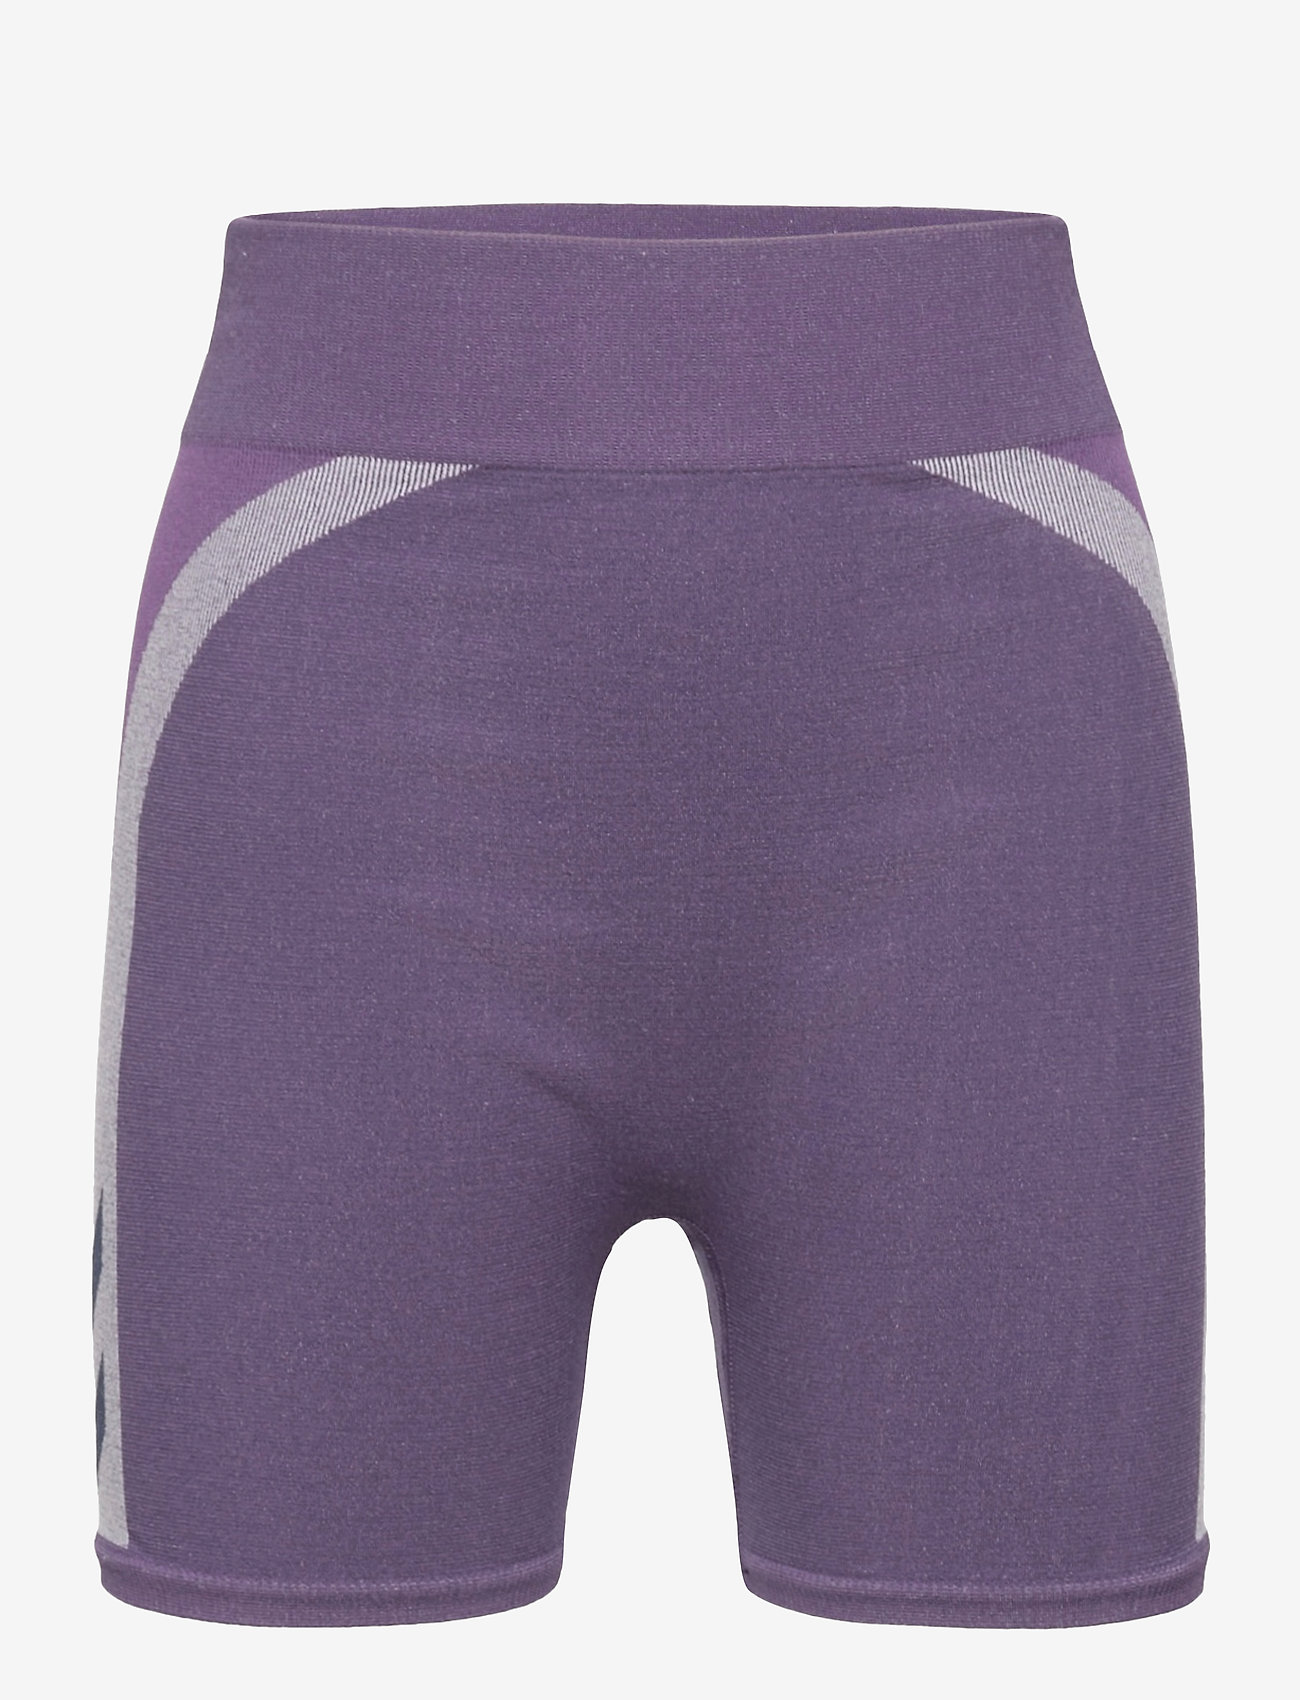 Hummel - hmlHARPER SEAMLESS TIGHT SHORTS - shorts - ombre blue - 0